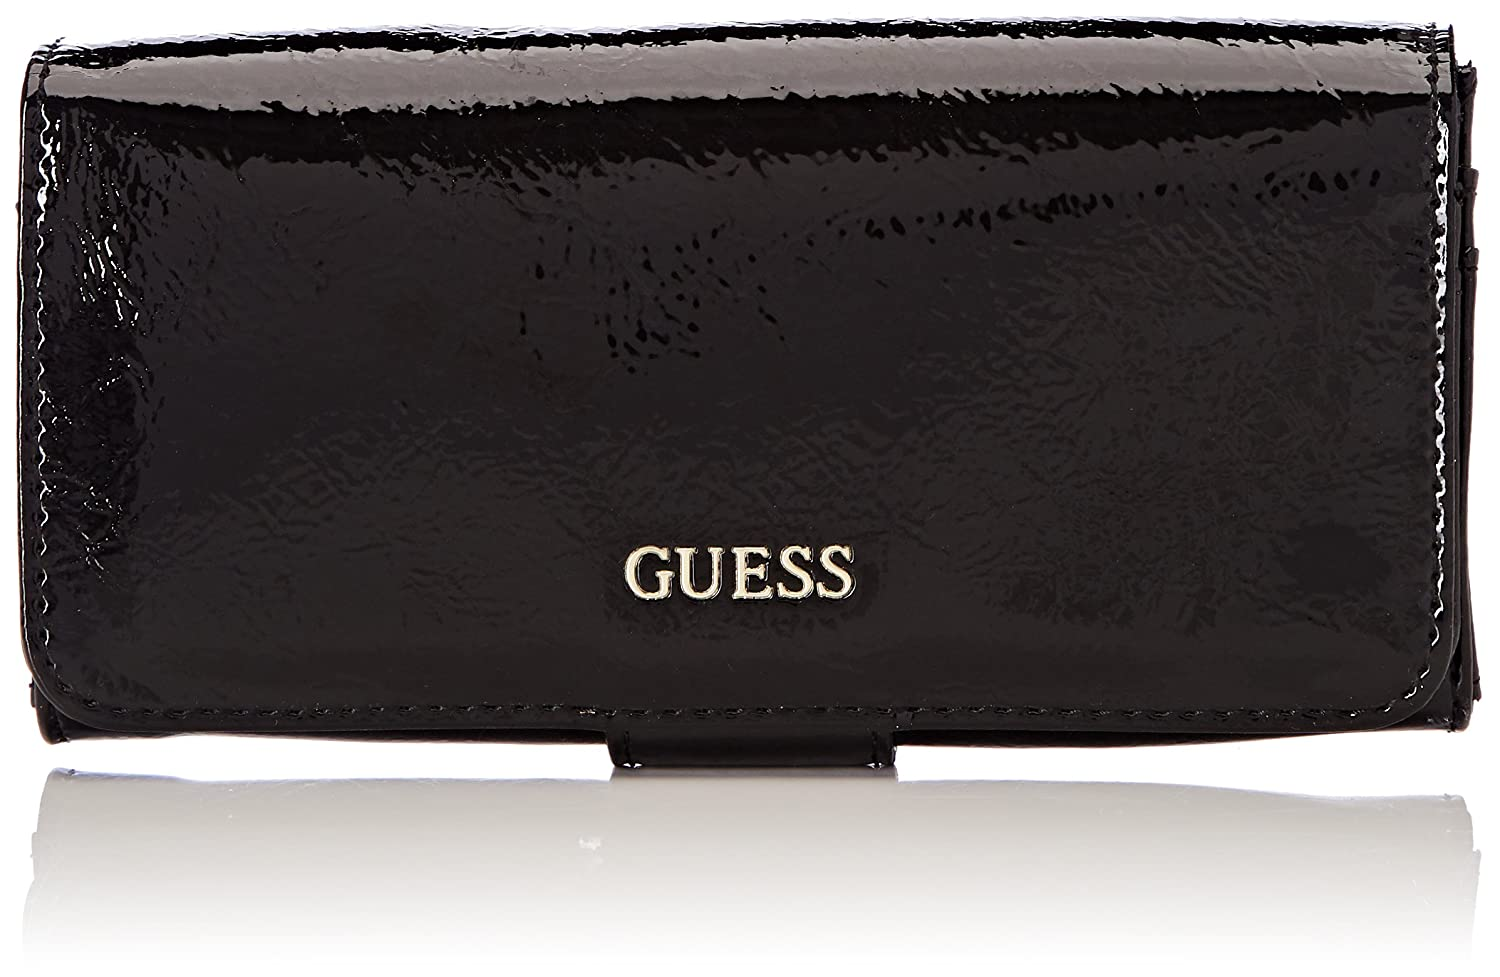 Guess - Slg Wallet, Carteras Mujer, Negro (Black), 2x10x20 cm (W x H L)